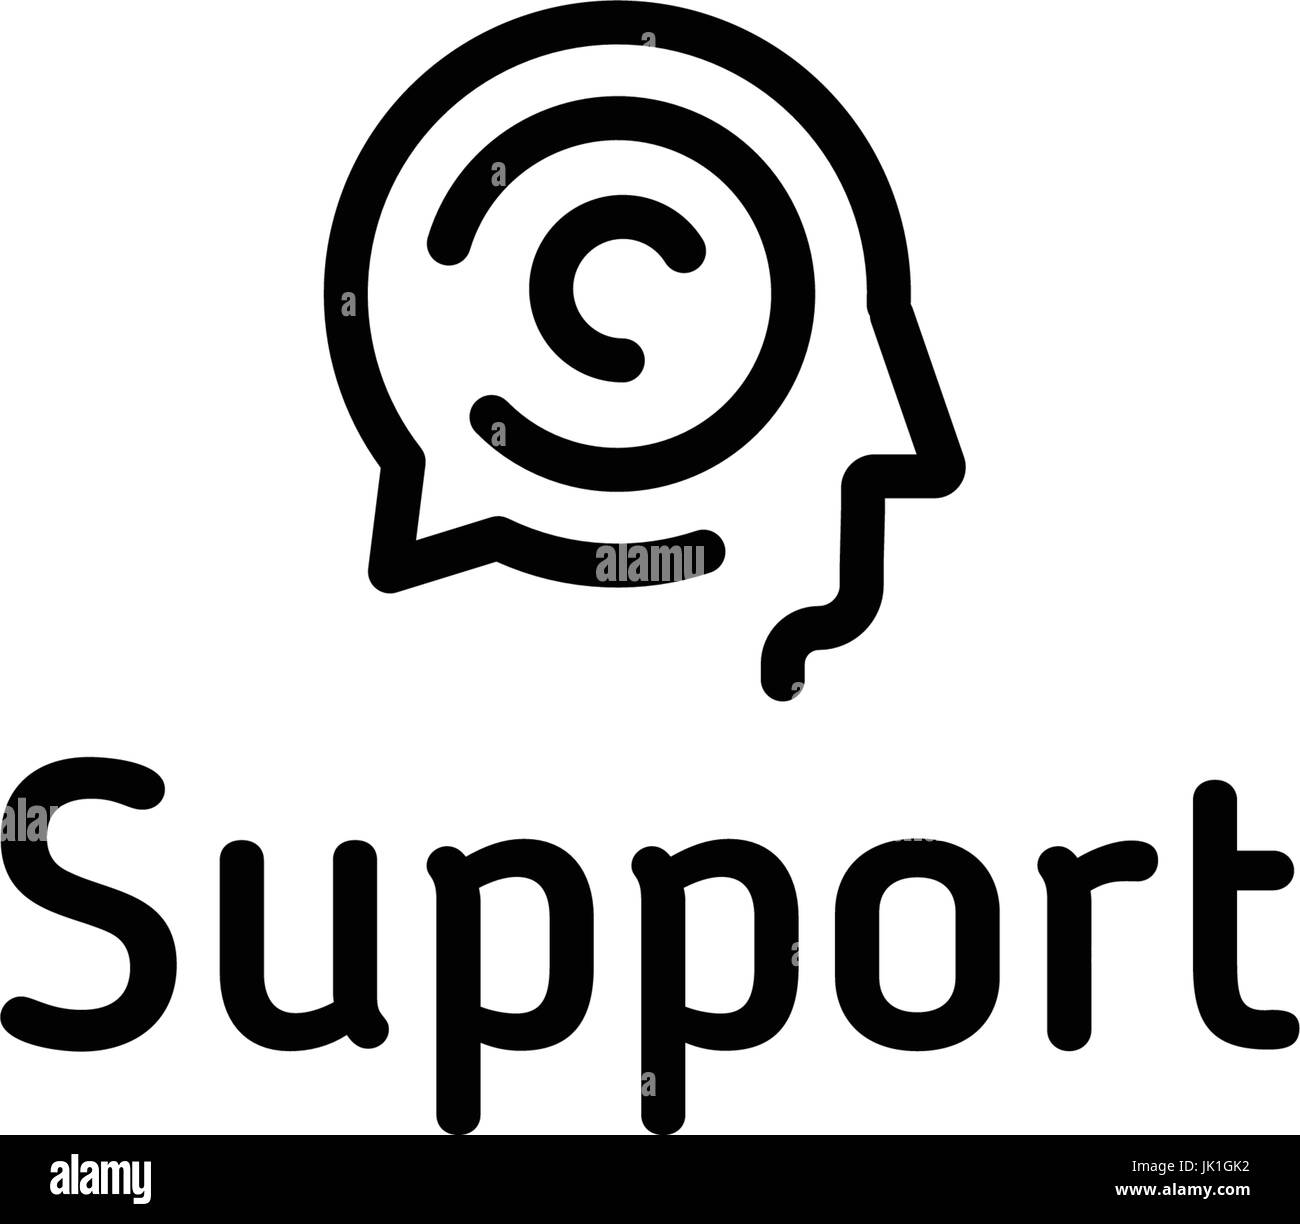 Support vector logo. Linear speech chat icon. Brain storm design concept. - Stock Image